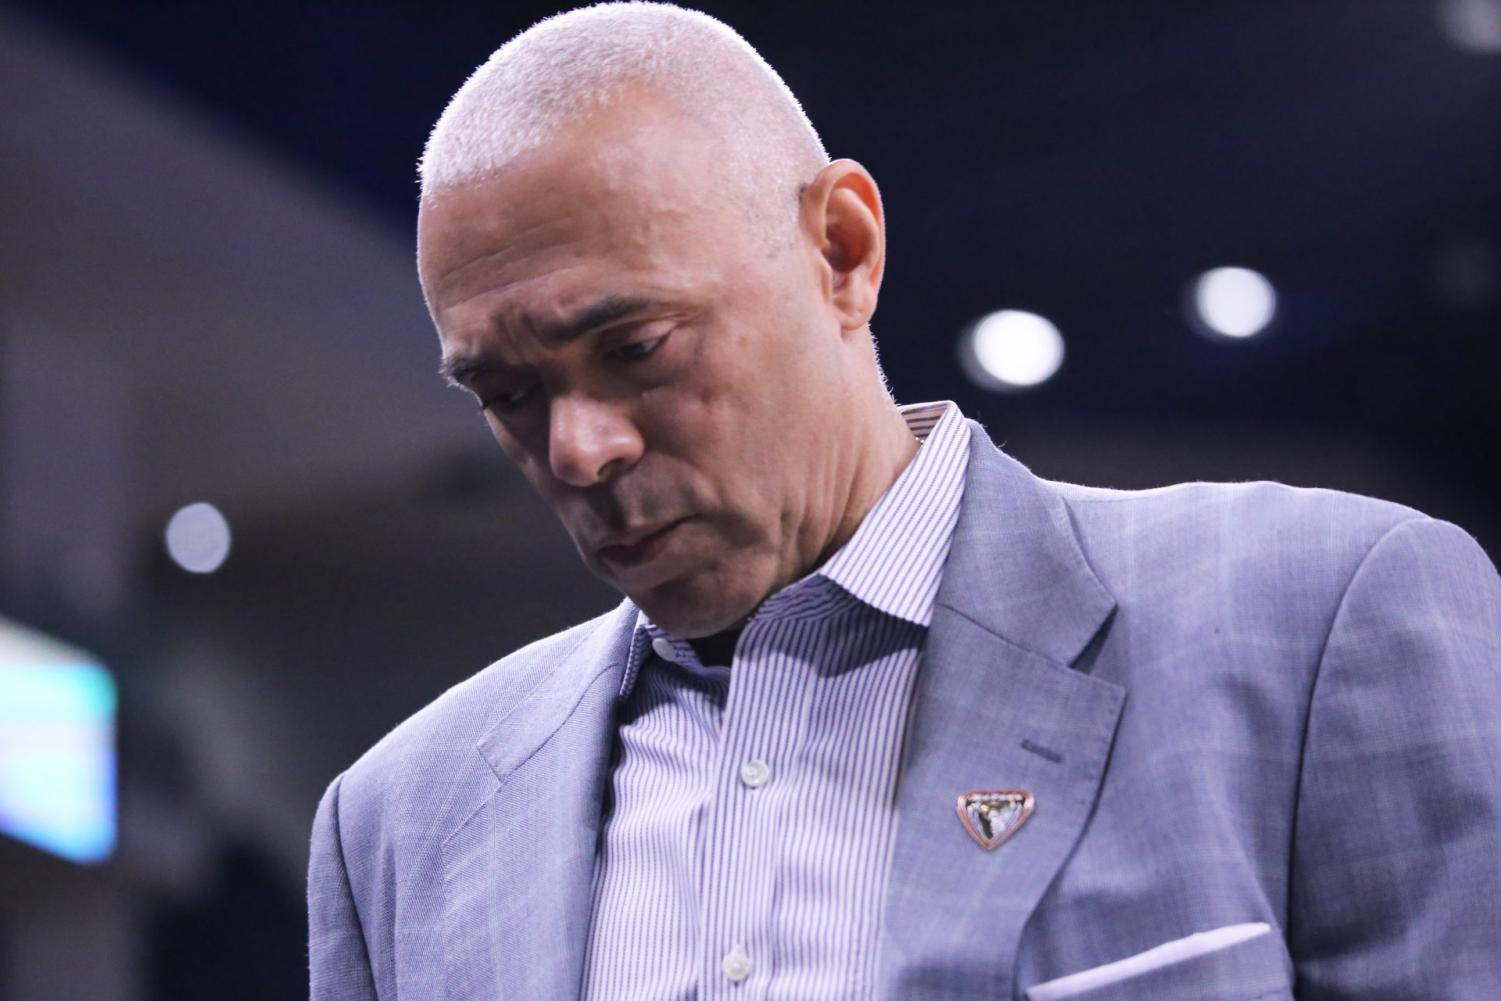 DePaul head coach Dave Leitao looks down during the Blue Demons' 79-66 loss to St. John's on Saturday at Wintrust Arena.